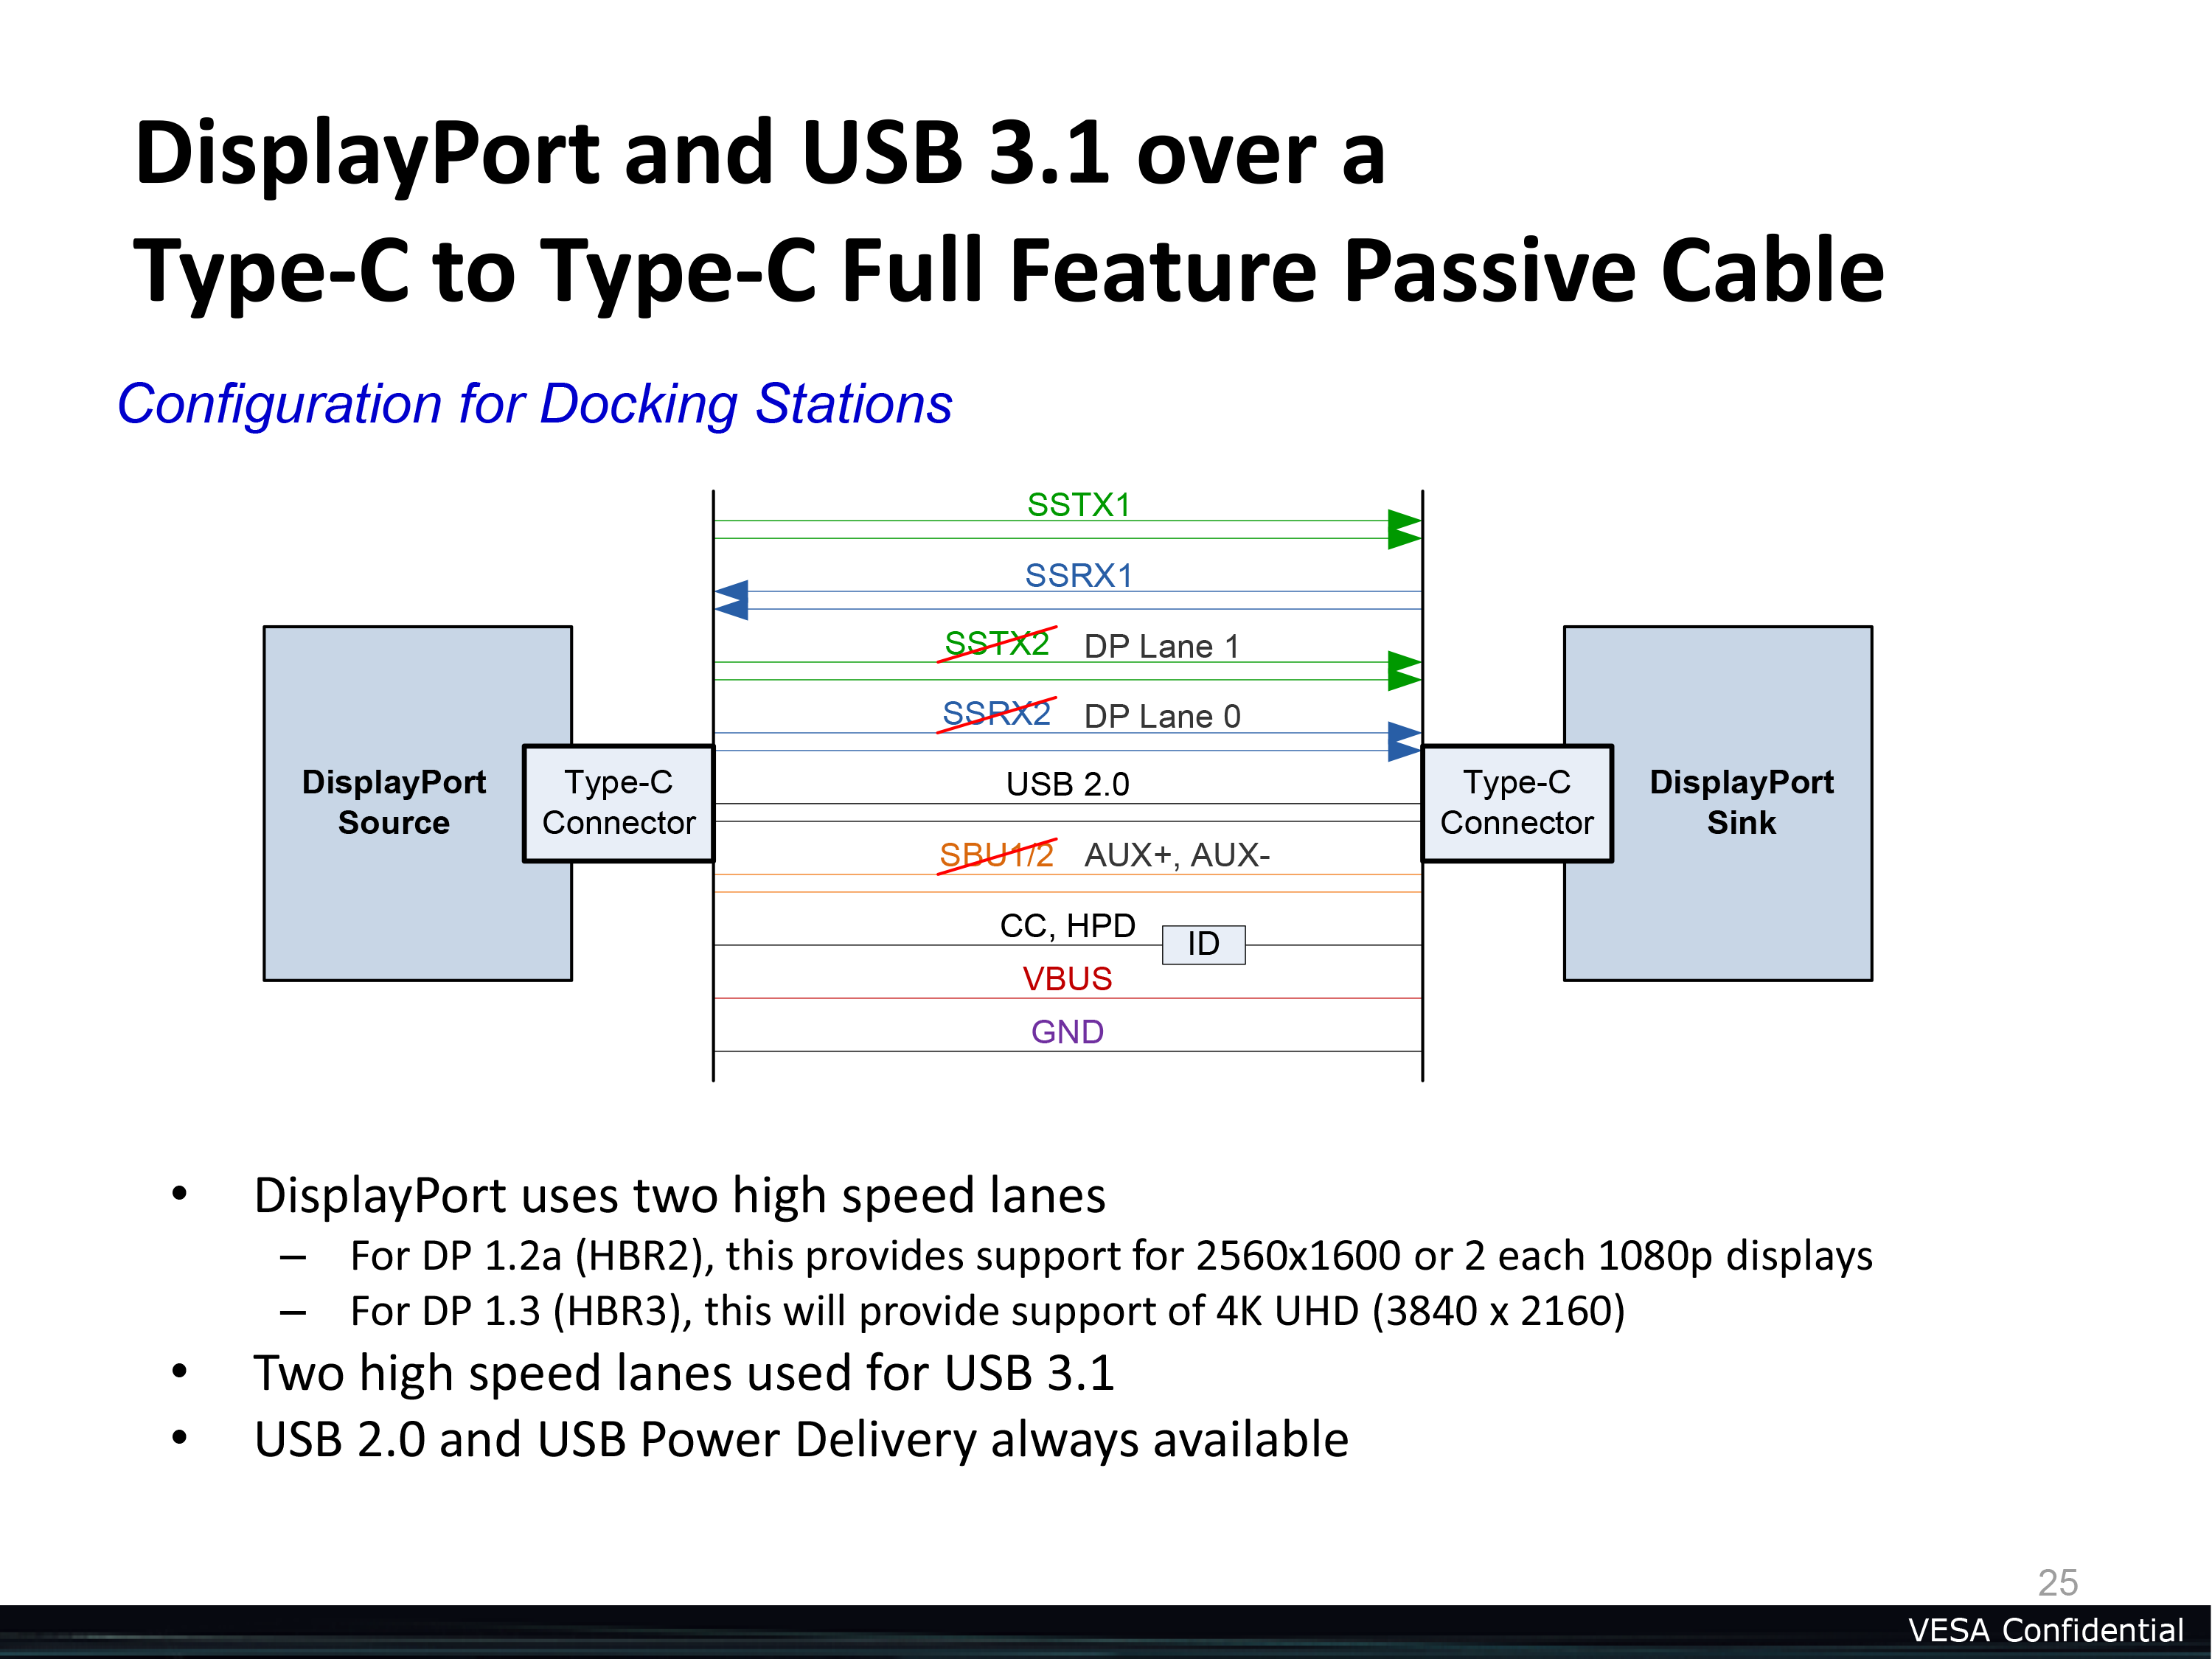 displayport alternate mode for usb type c announced video power rh anandtech com DisplayPort Connector Types DisplayPort Monitor Connector